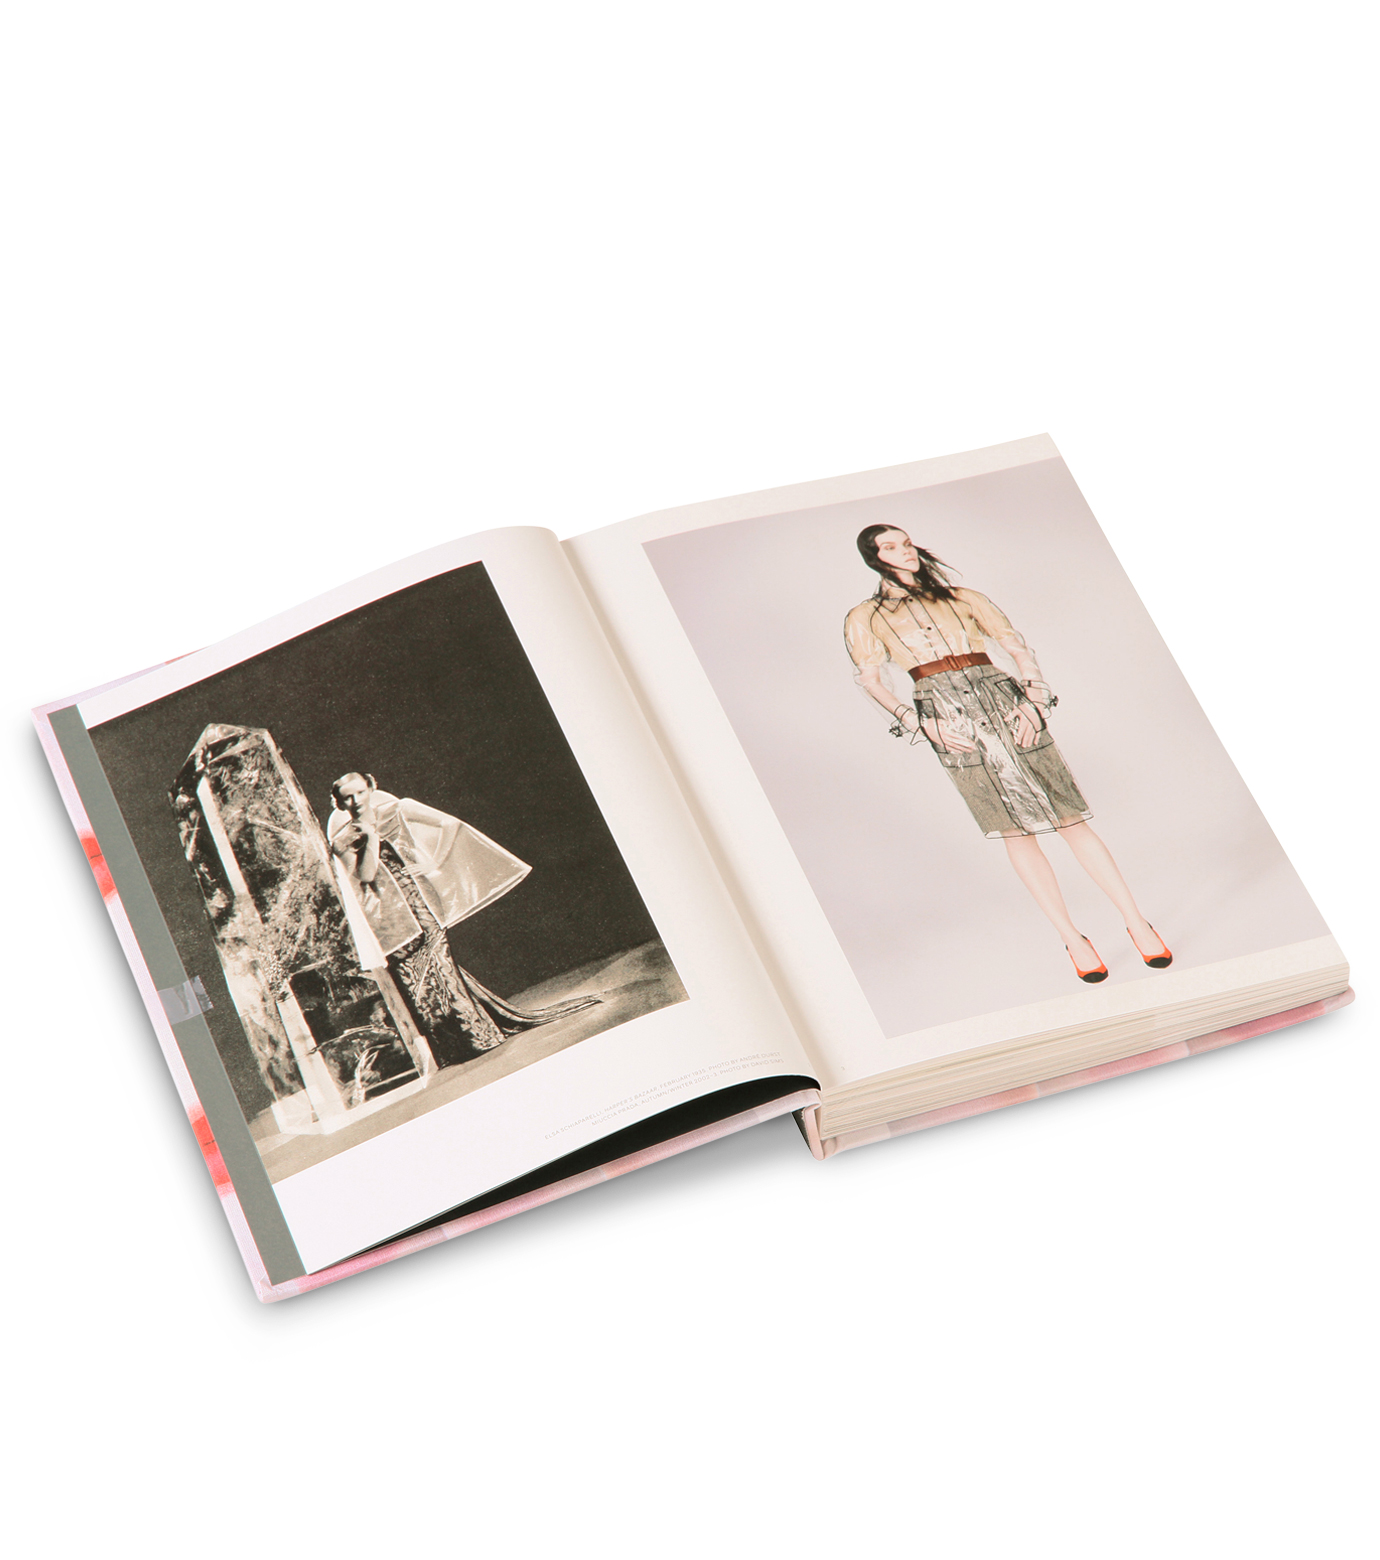 ArtBook(アートブック)のSchiaparelli and prada-RED(インテリア/OTHER-GOODS/interior/OTHER-GOODS)-300-17955-2-62 拡大詳細画像2